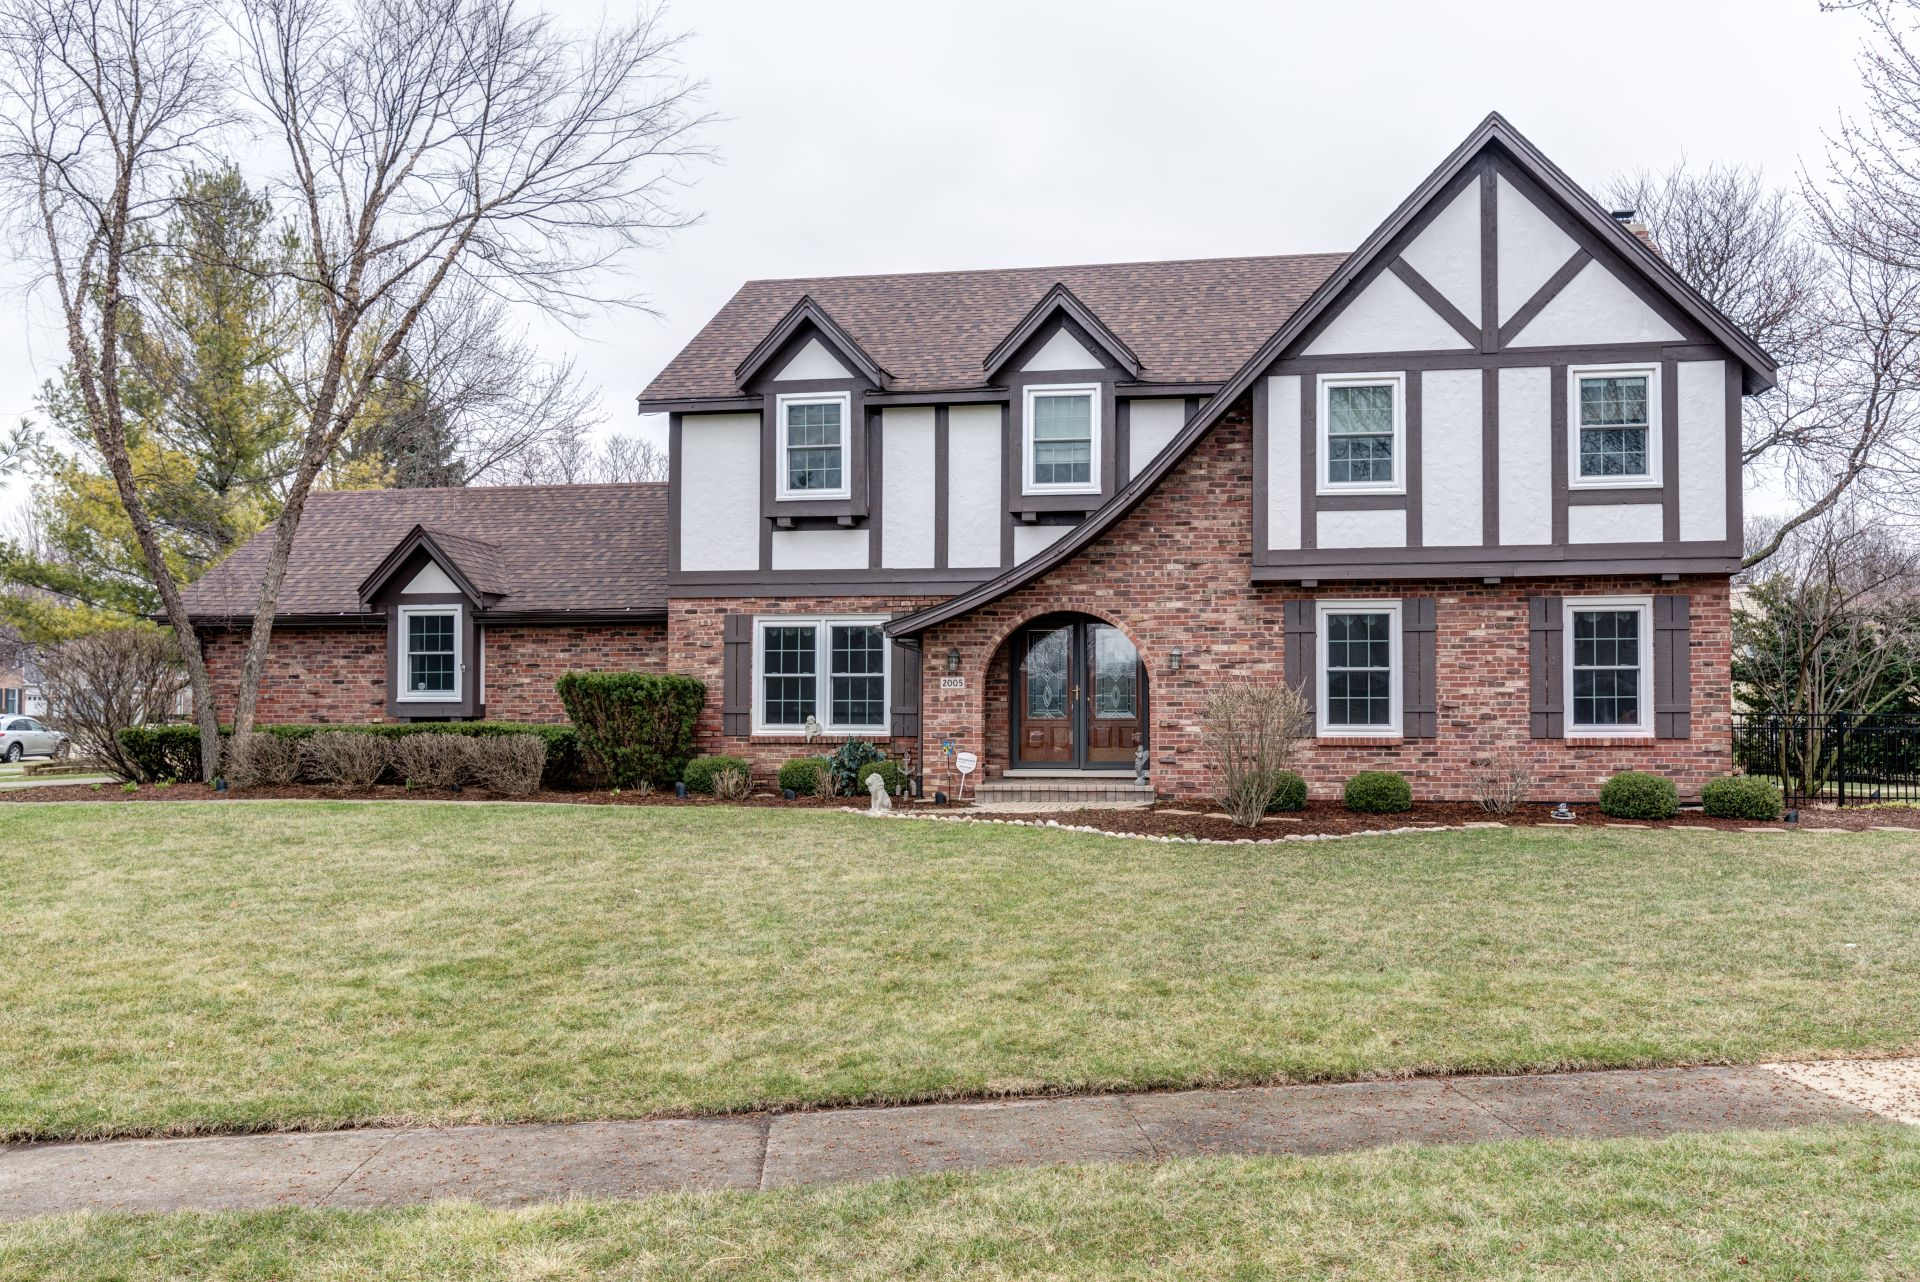 2005 Somerset Lane, Wheaton, IL 60189 Just listed for sale!